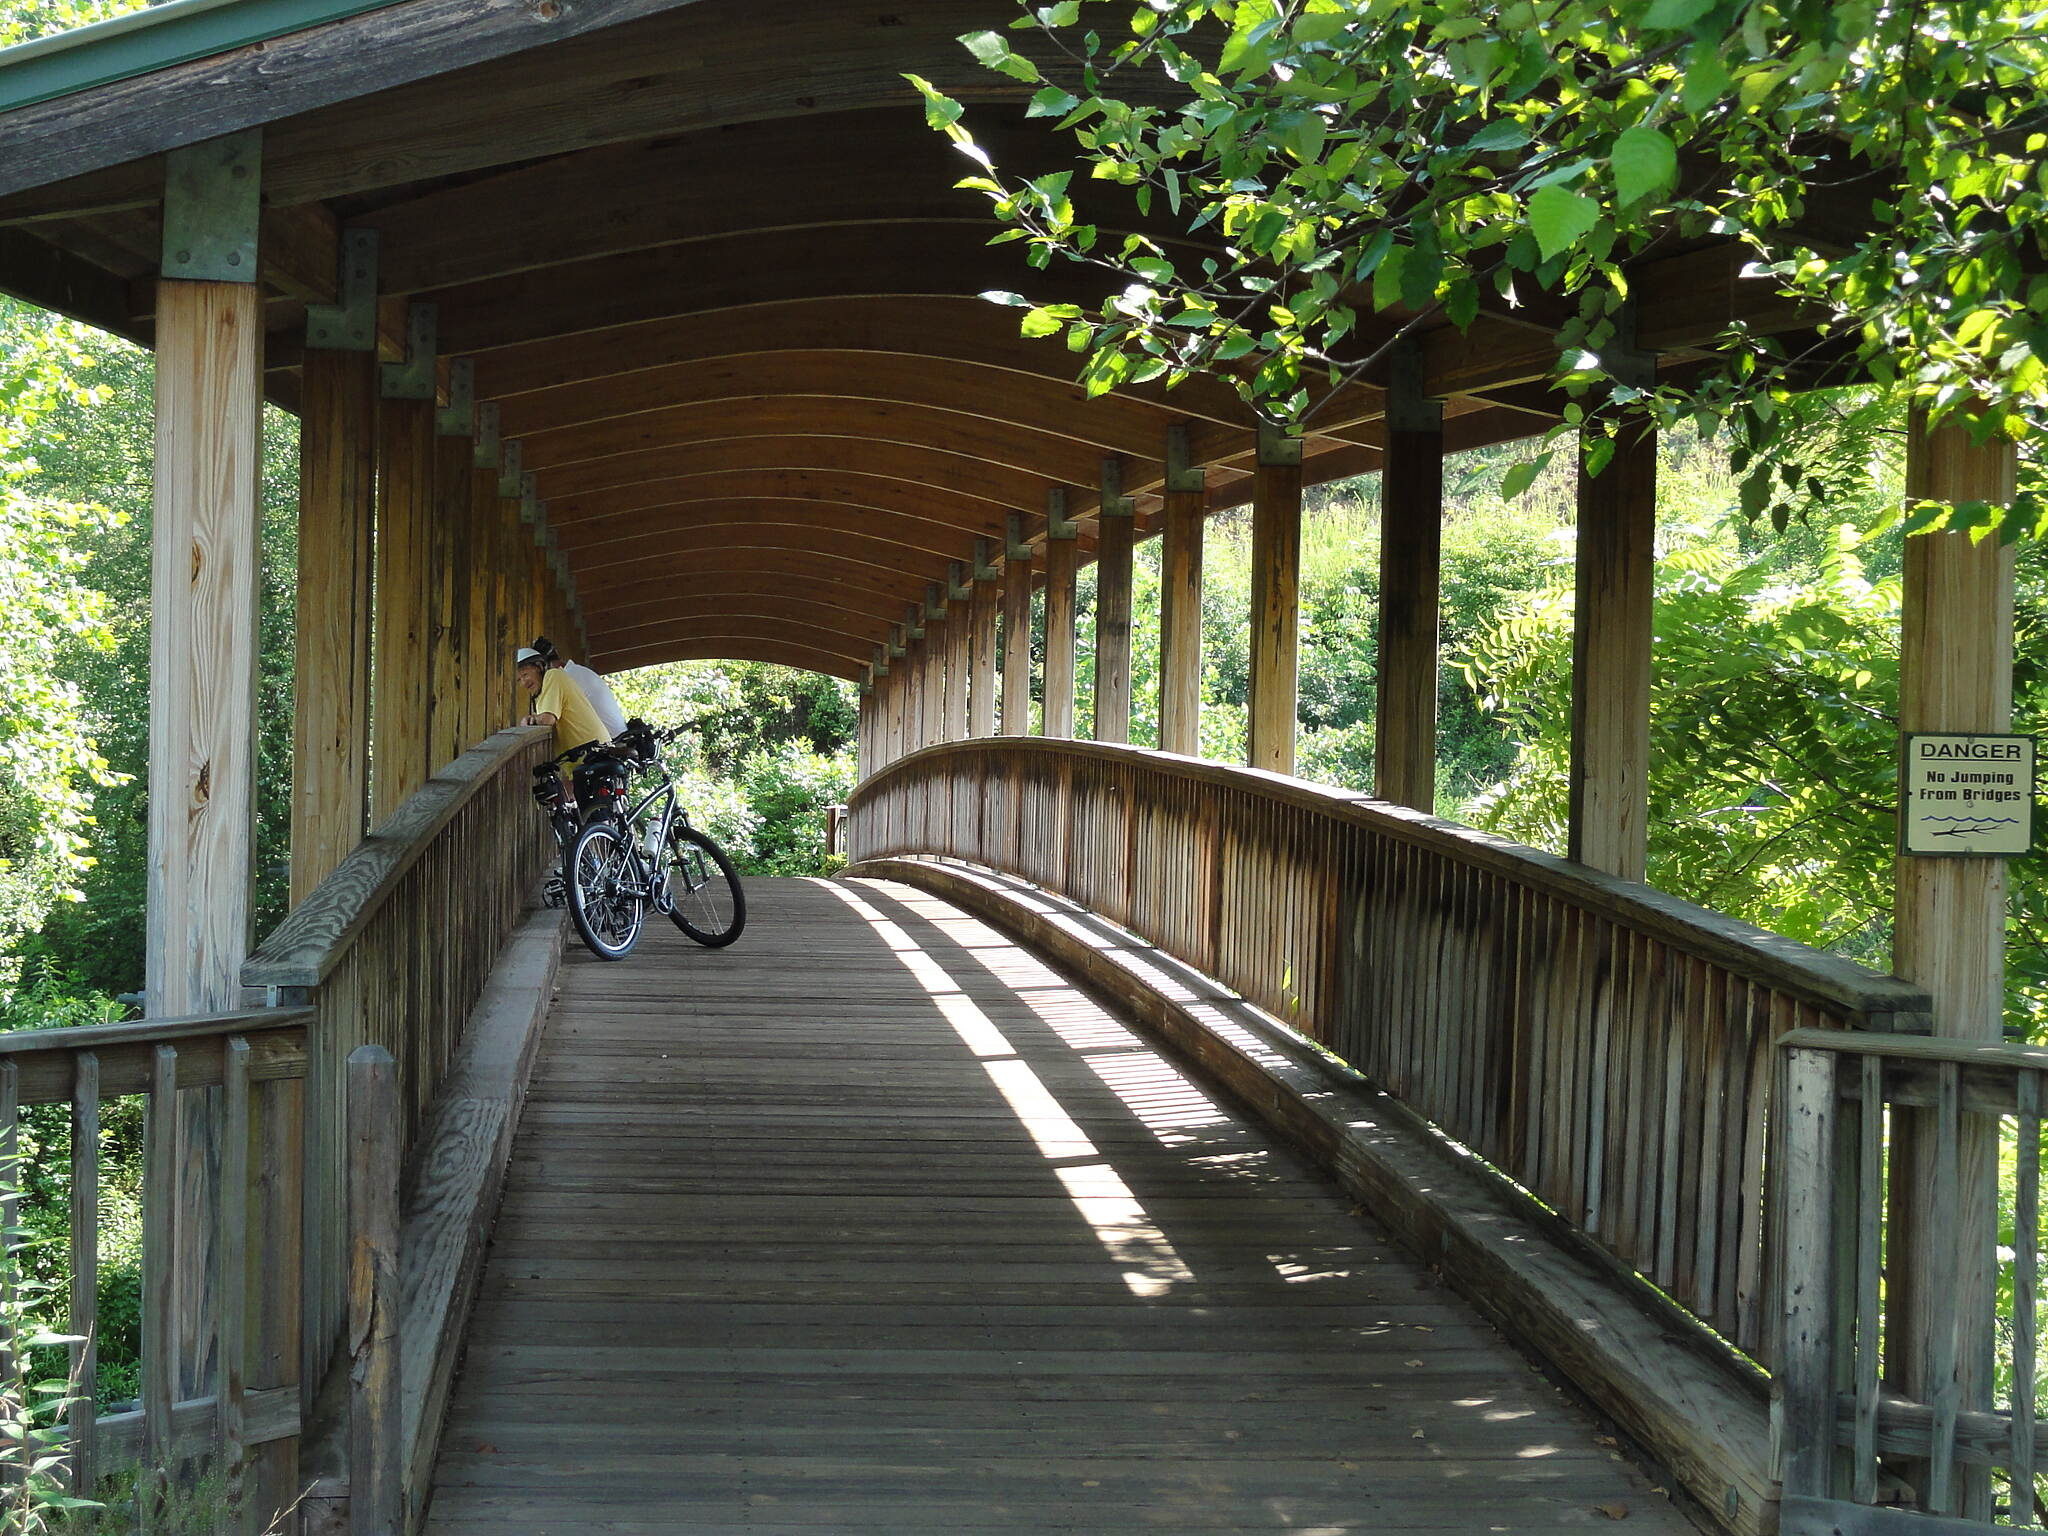 Little Tennessee River Greenway (Franklin) Cyclists Pause Midbridge One of several picturesque bridges on this trail.